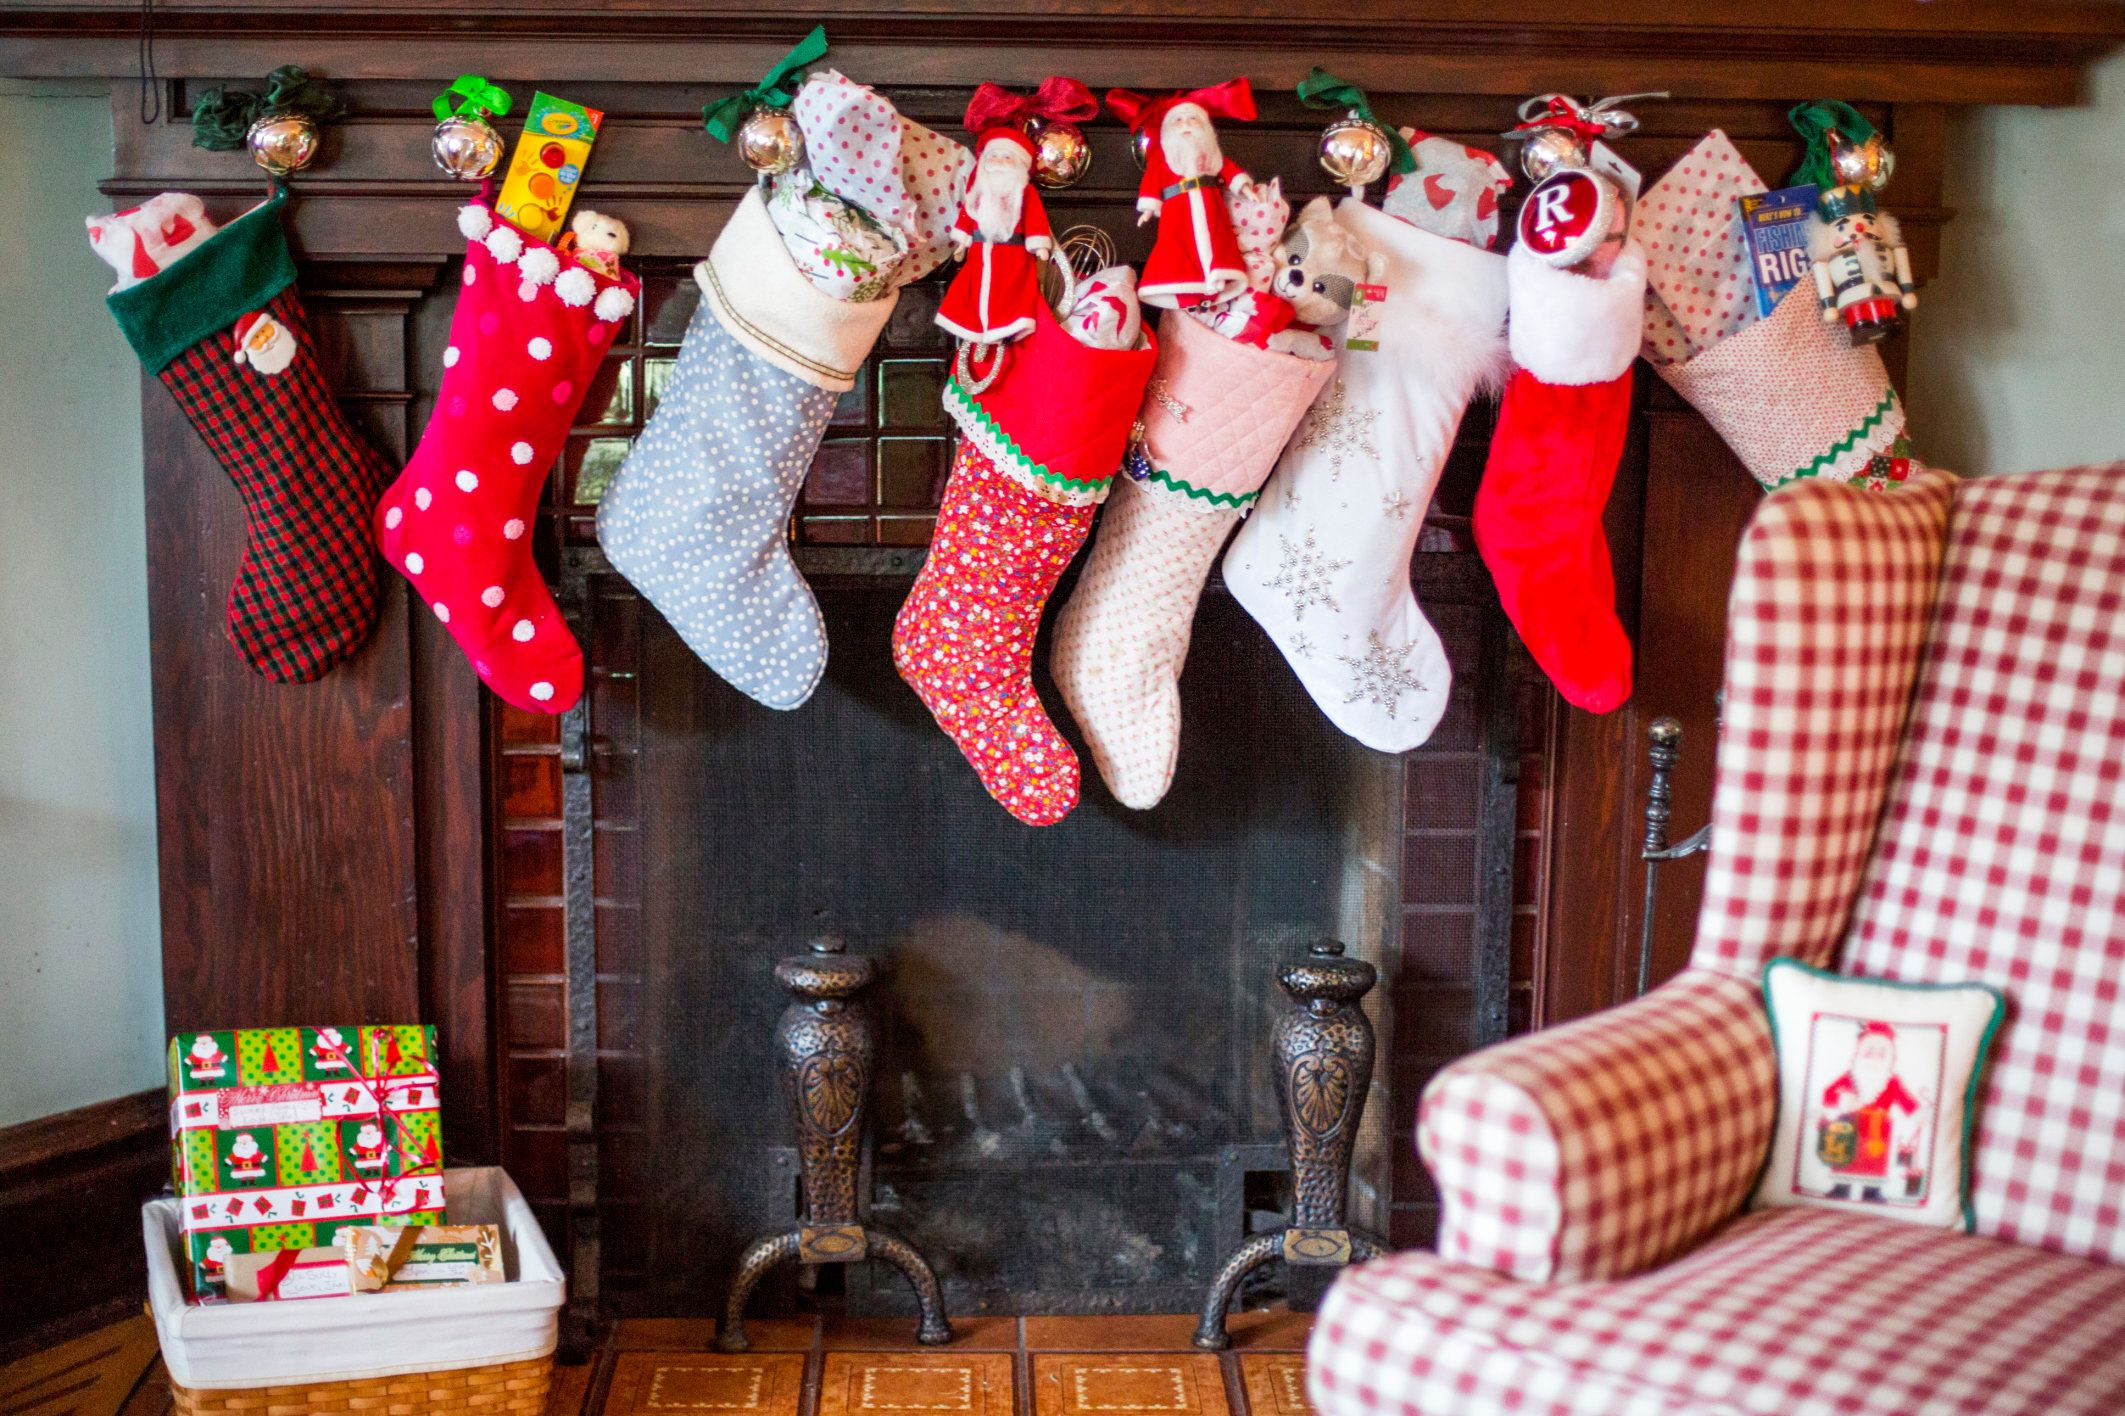 8 Reasons We All Need To Start Celebrating Christmas In